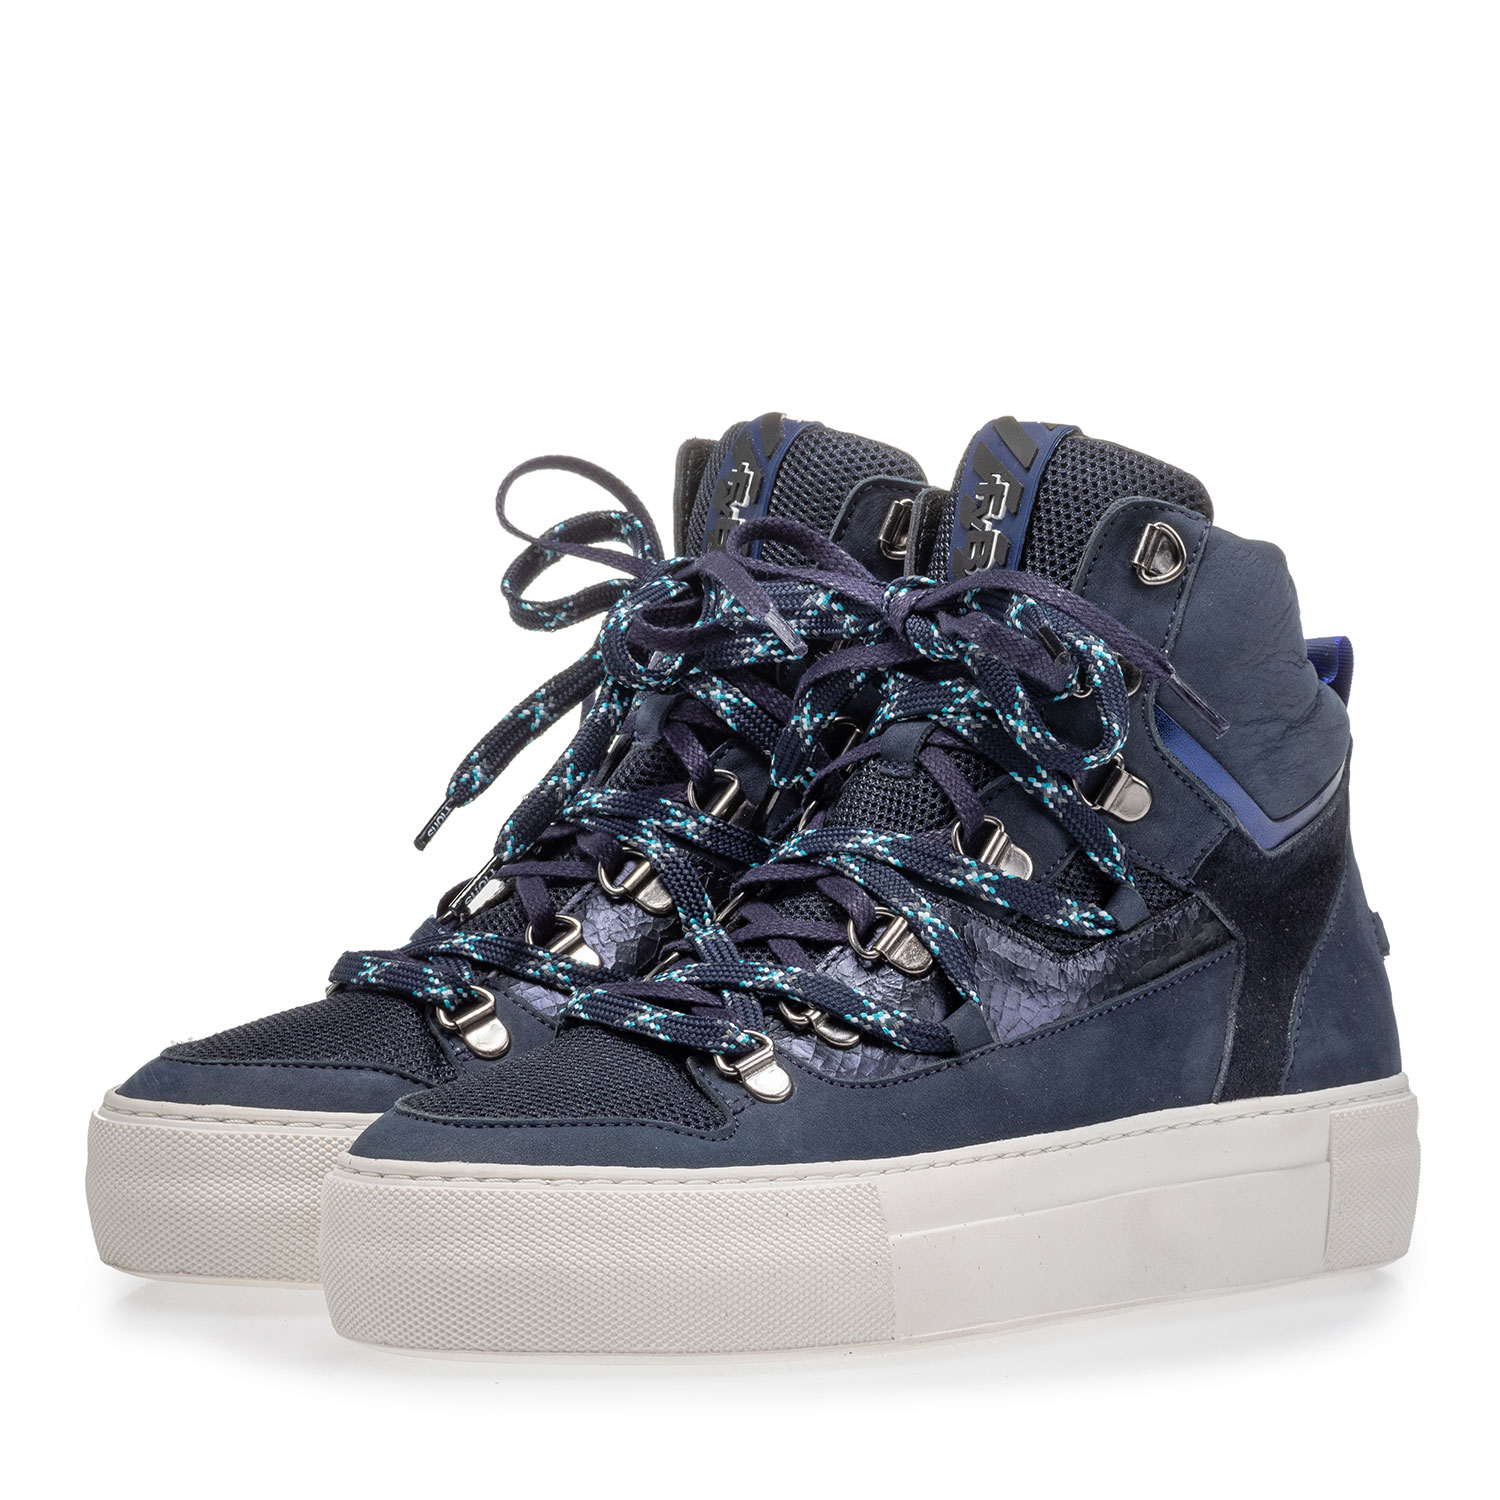 85315/01 - Mid-high sneaker nubuck leather blue